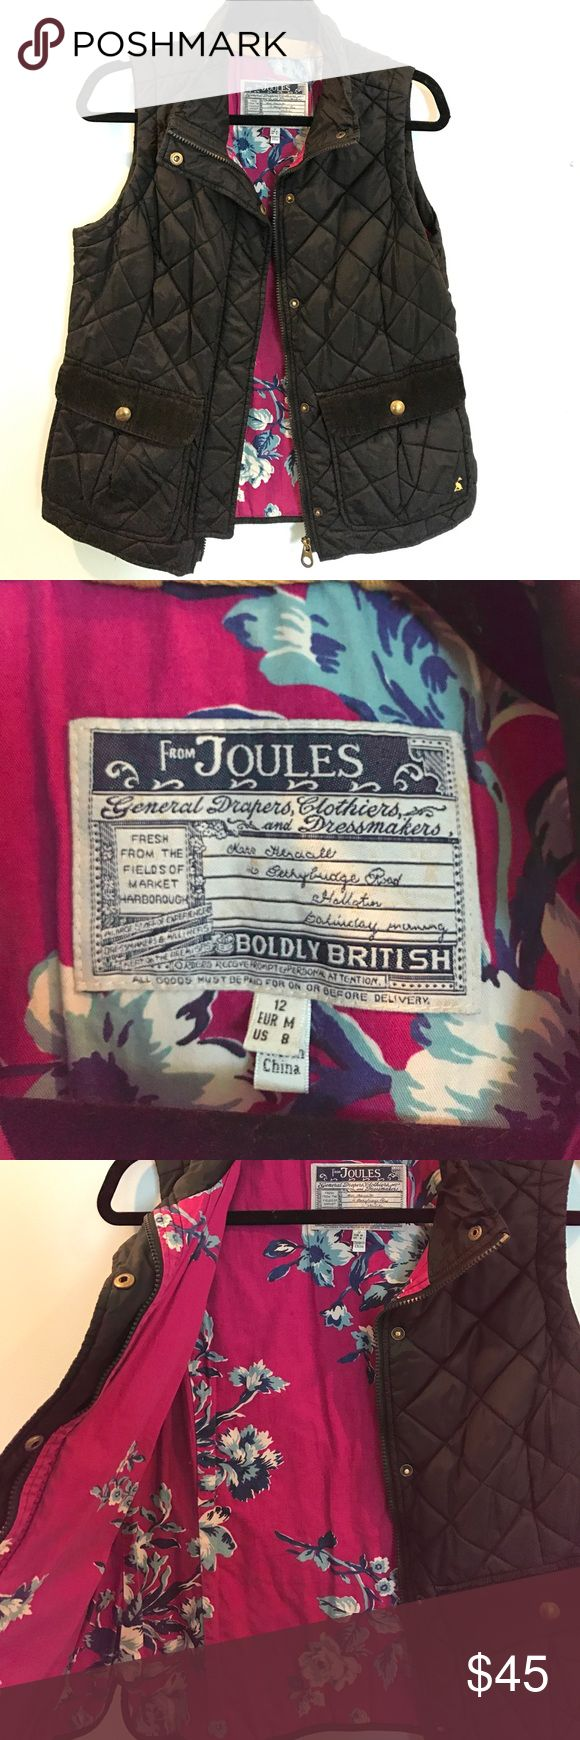 Joules Padded Vest Black padded women's vest from Joules. Bright pink floral inside! Great for fall and winter! Contact with questions! Joules Jackets & Coats Vests